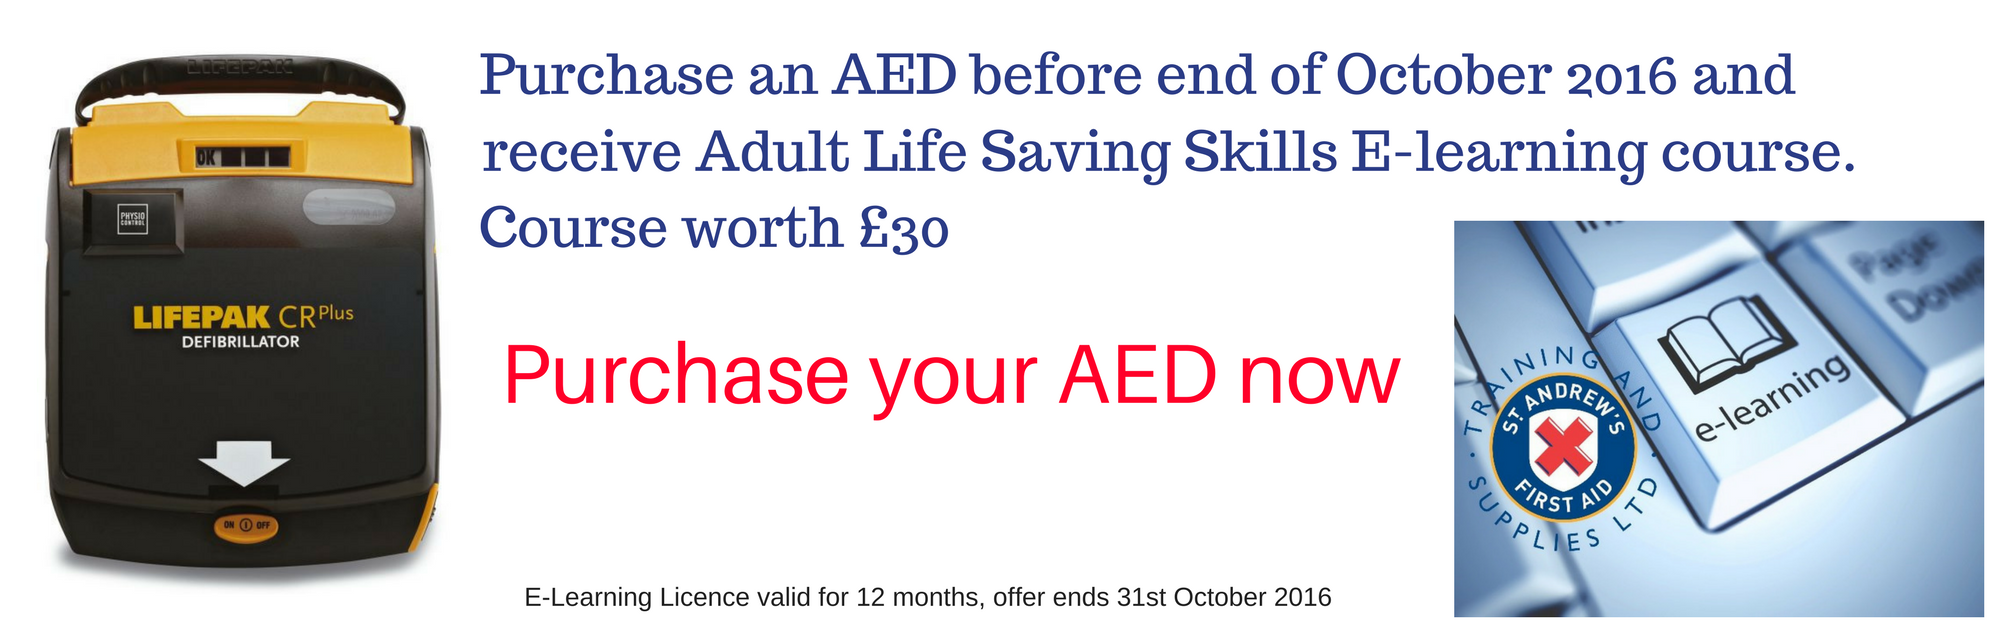 Purchase an AED